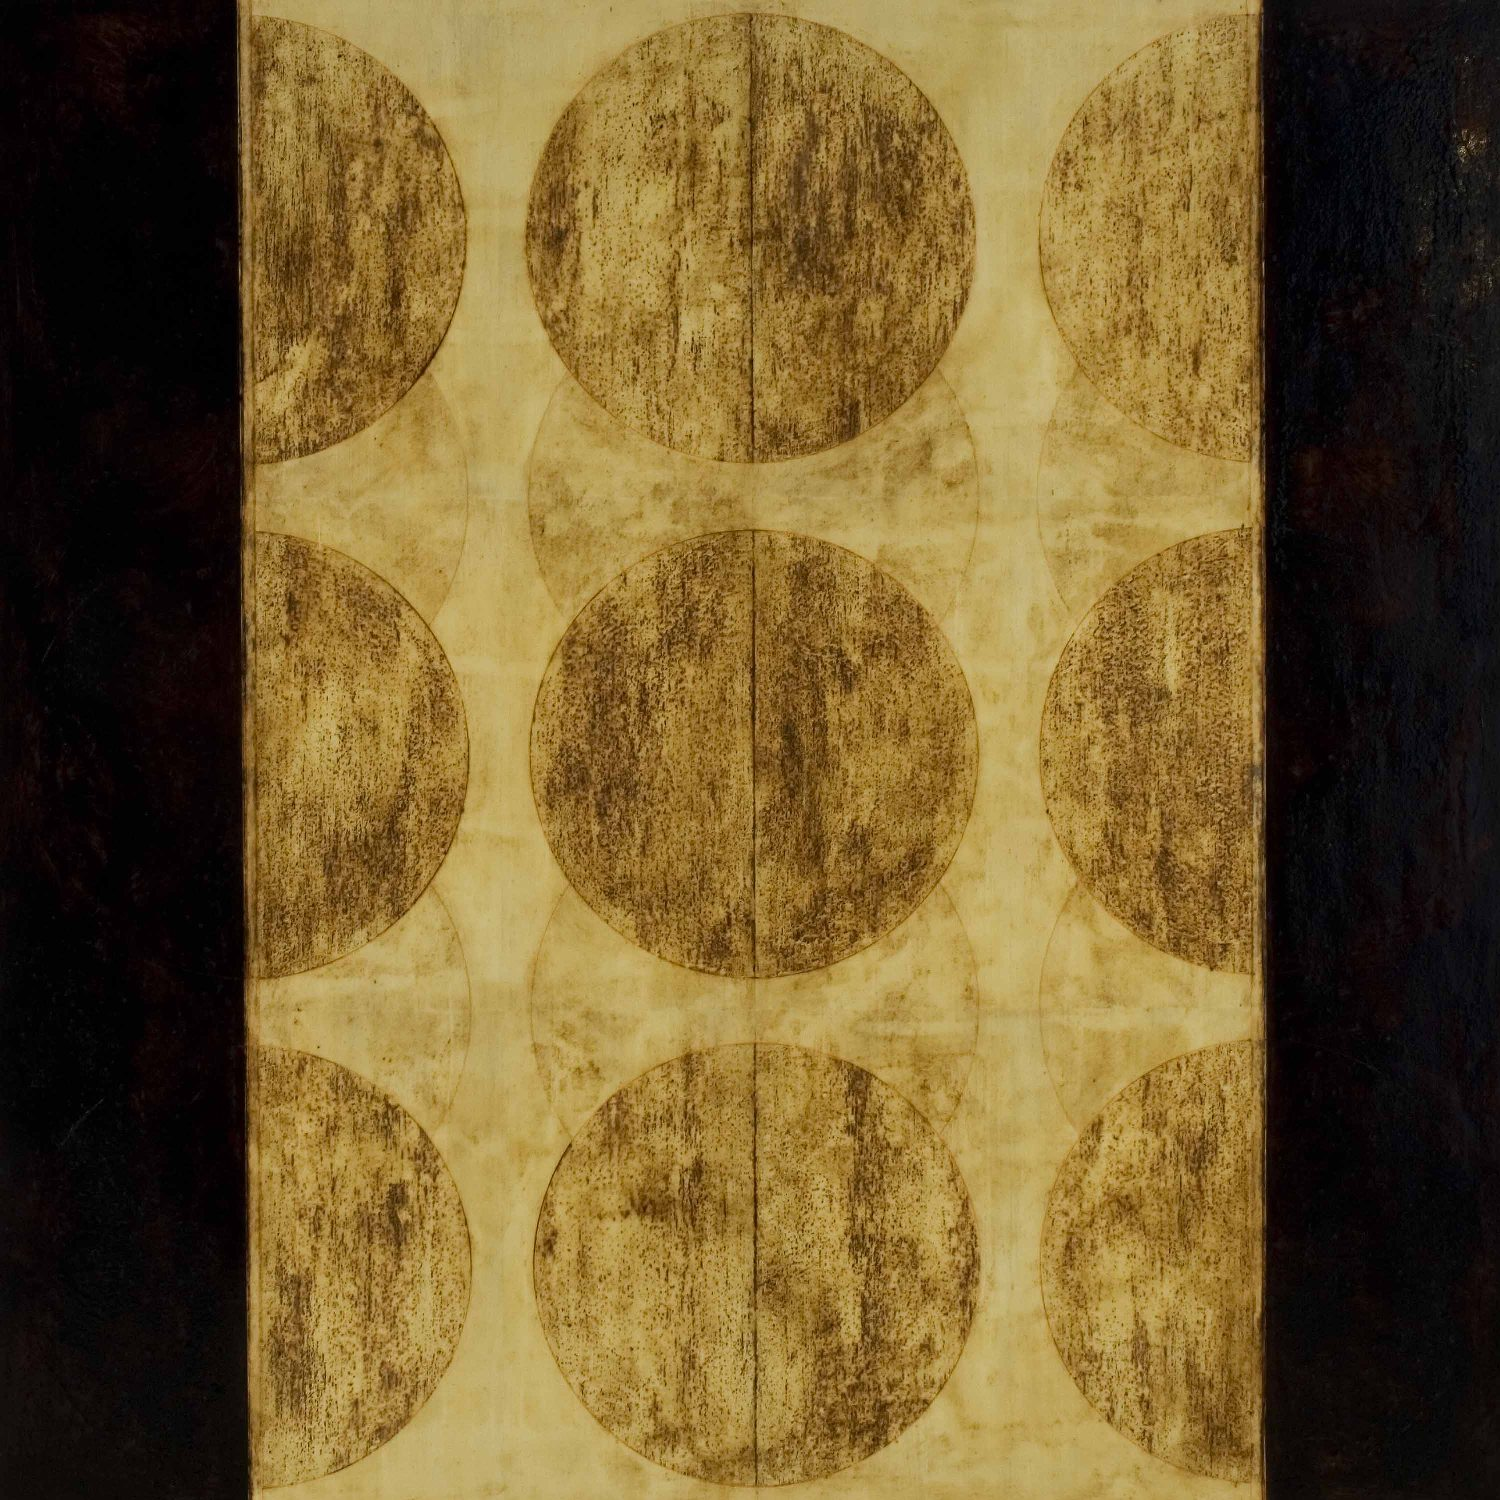 Marco Logsdon.Untitled 2108.Oil, Tar, Beeswax on Panel. 48 inches square.jpg